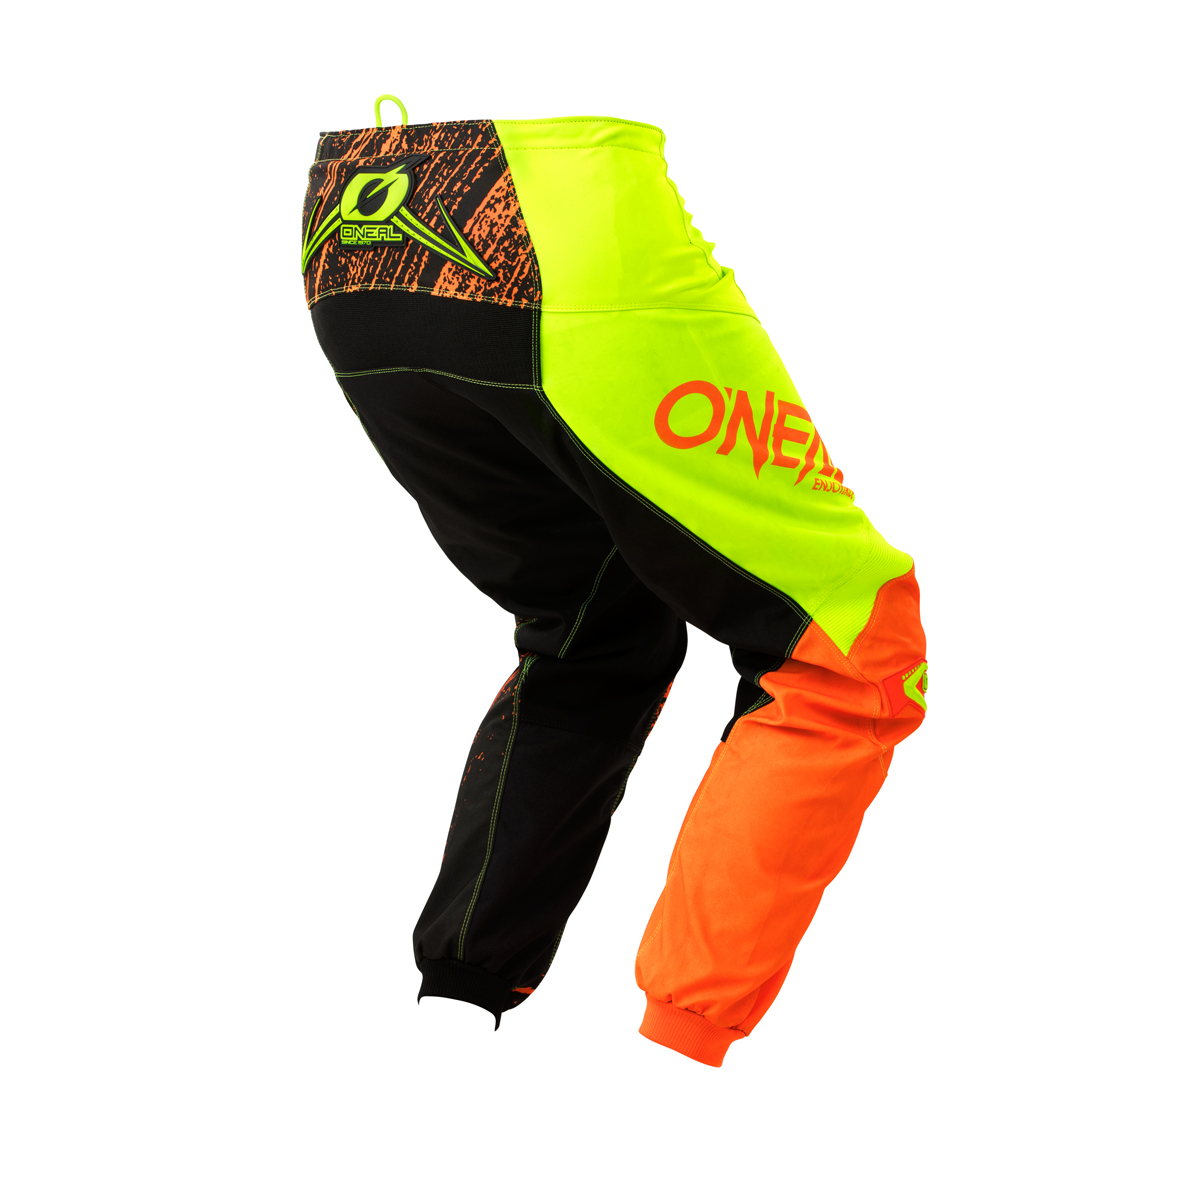 56 Gr/ö/ße Oneal Element Burnout MX DH MTB Pant Hose lang schwarz//orange//gelb 2018 Oneal 40